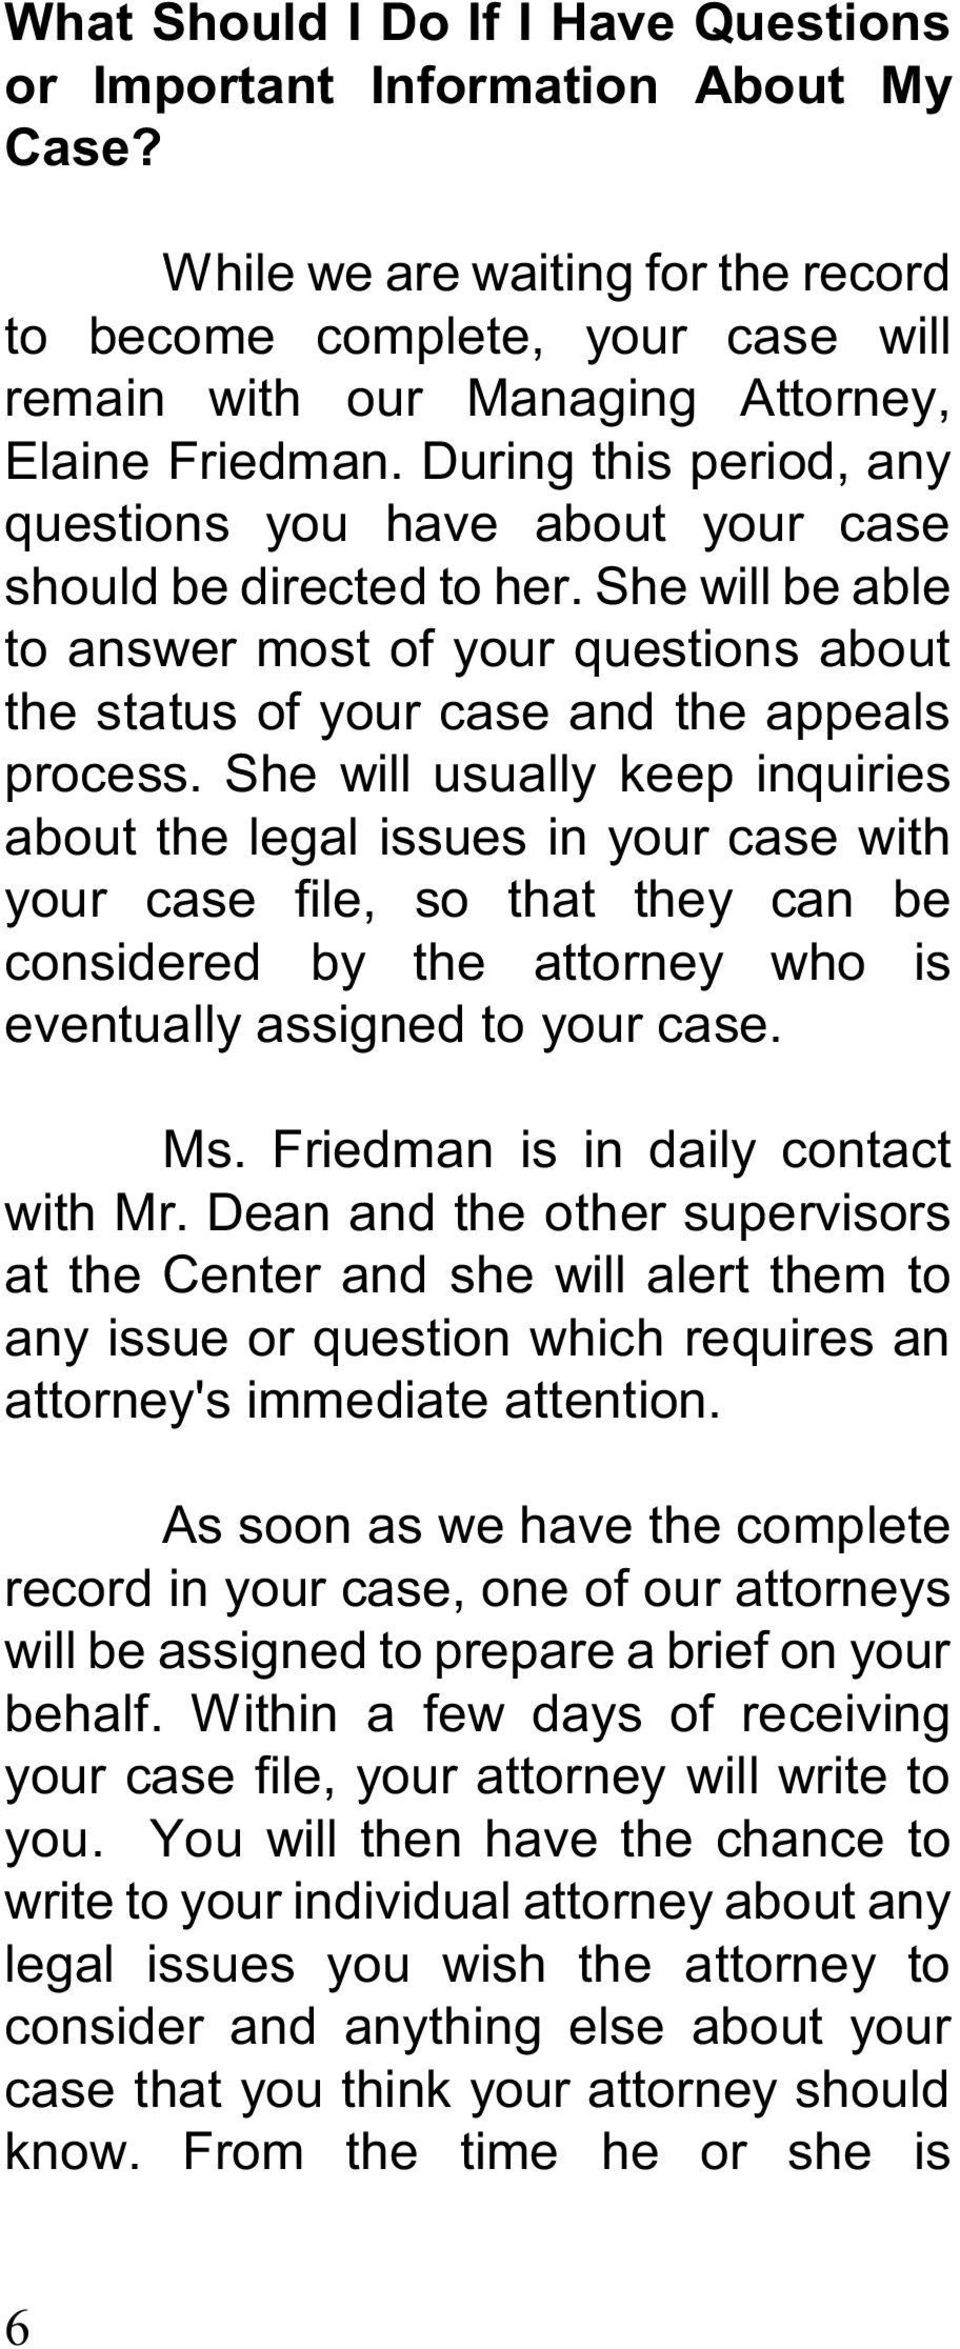 She will usually keep inquiries about the legal issues in your case with your case file, so that they can be considered by the attorney who is eventually assigned to your case. Ms.